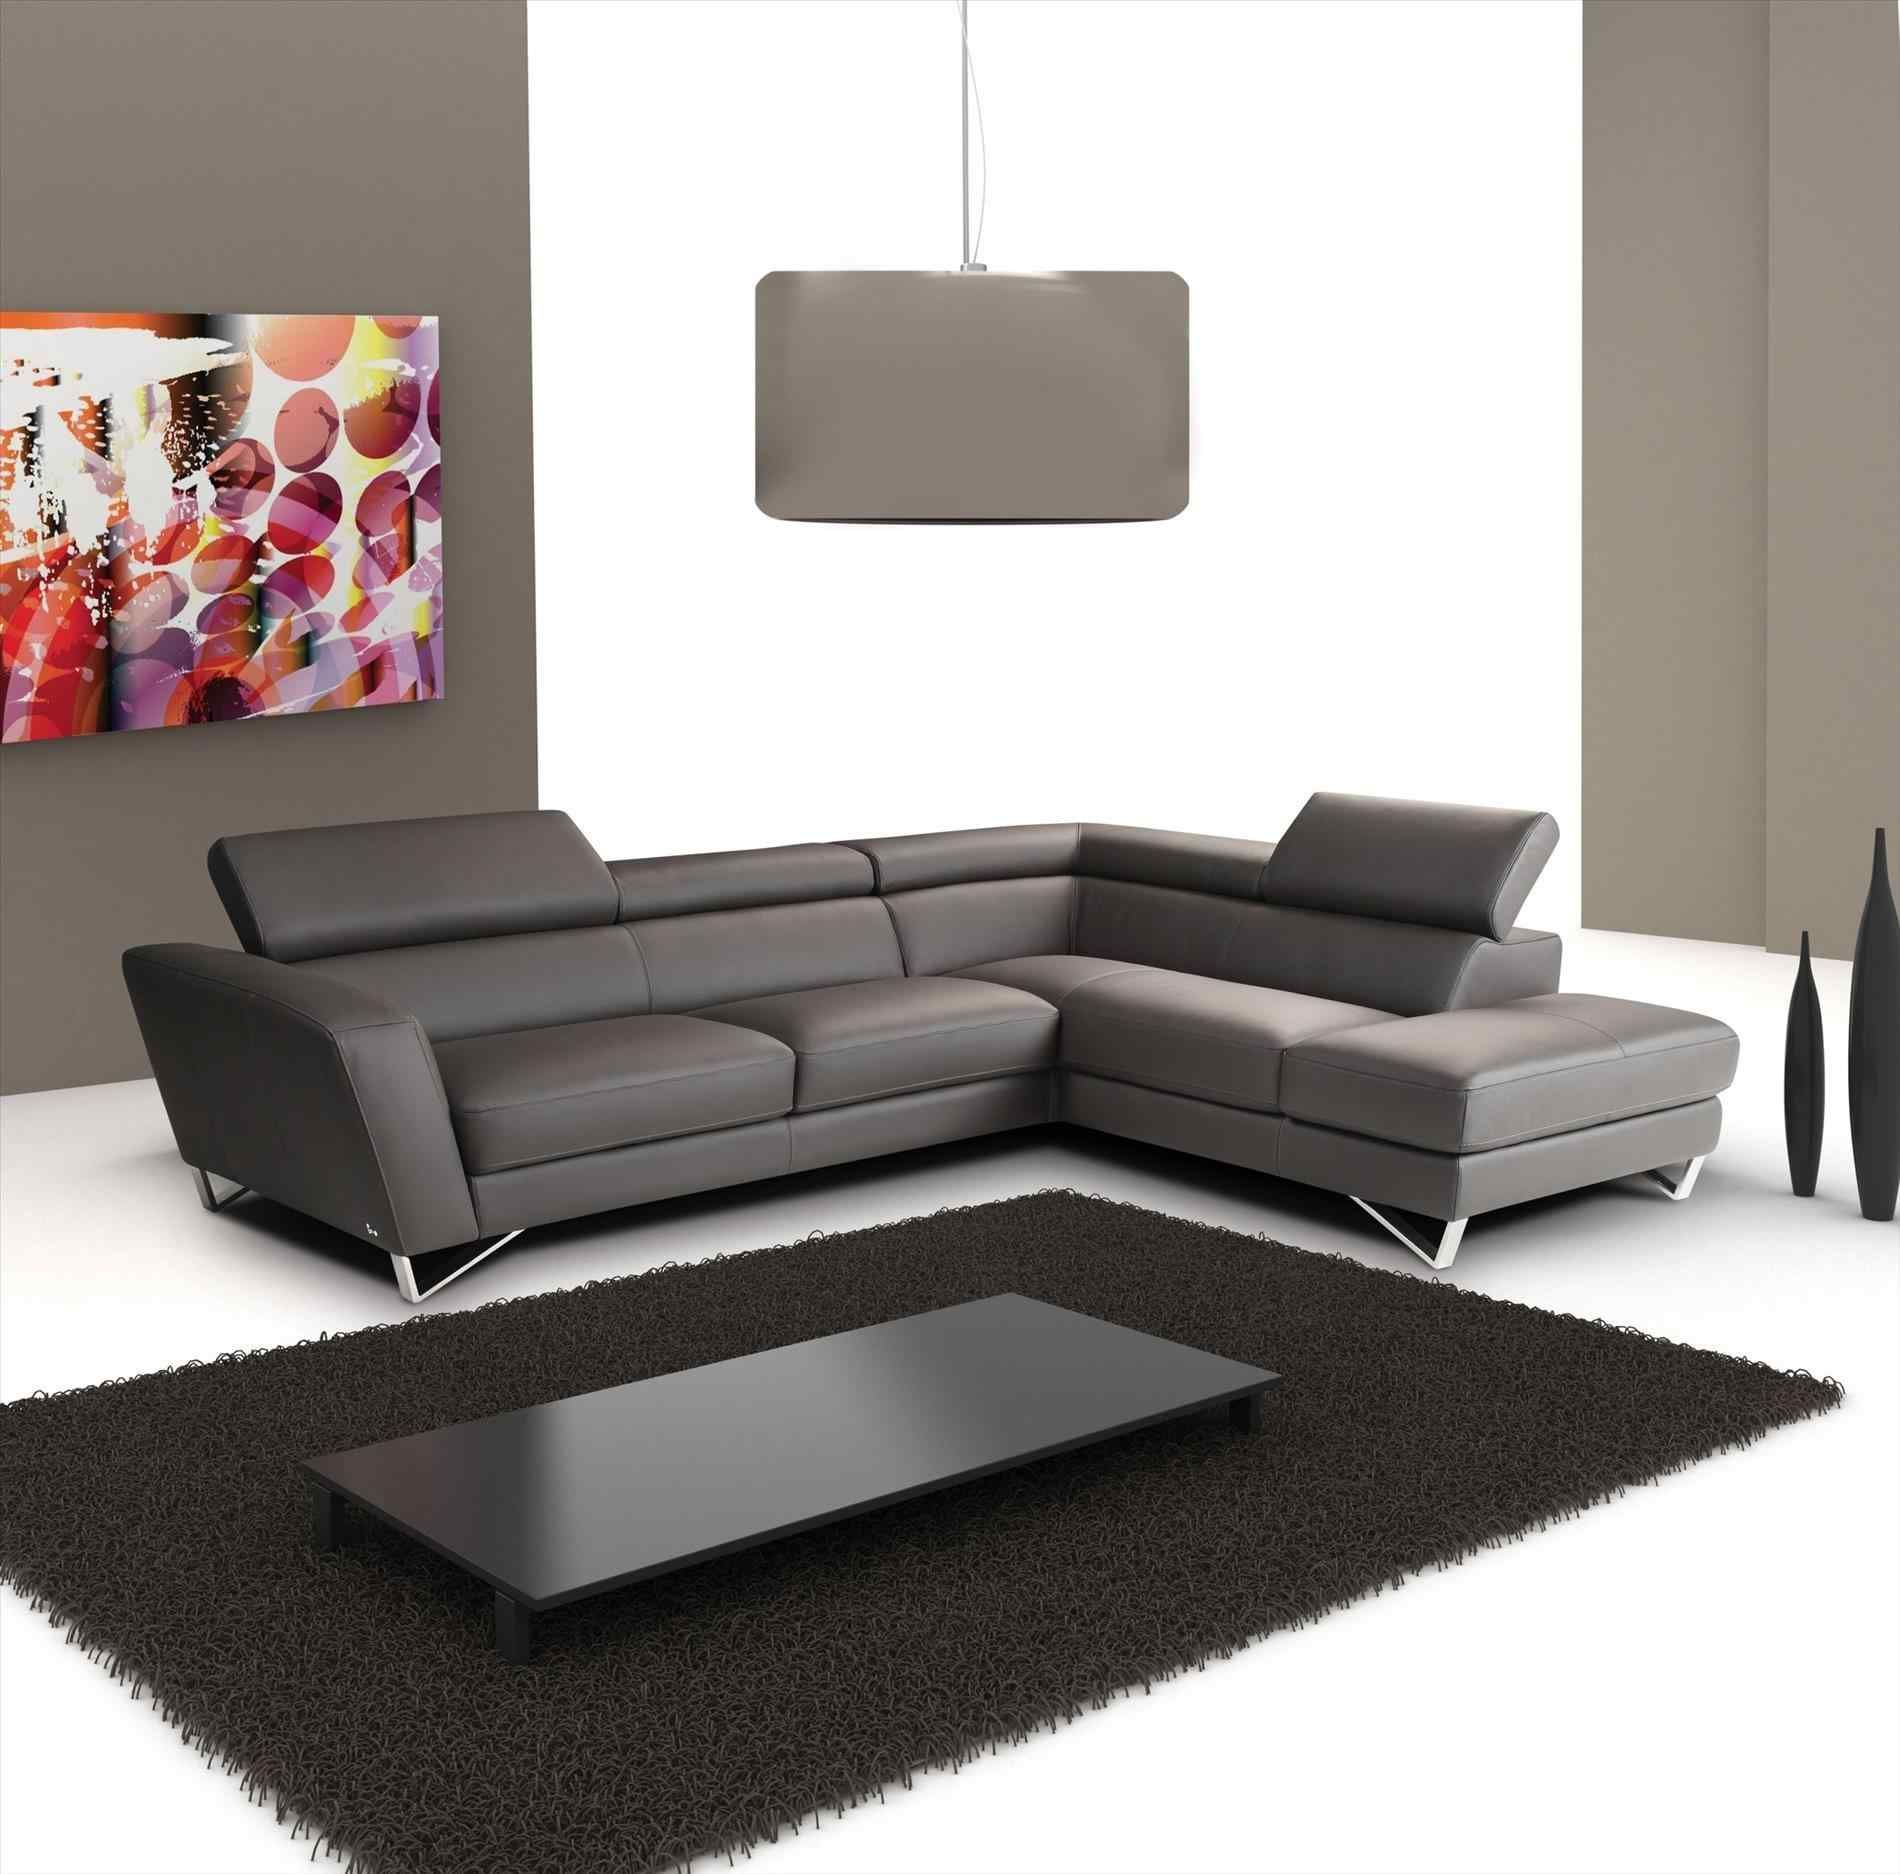 Sears Couches Low Cost Sectional Sofas Cozy Gray Sofa For With Additional Inexpensive